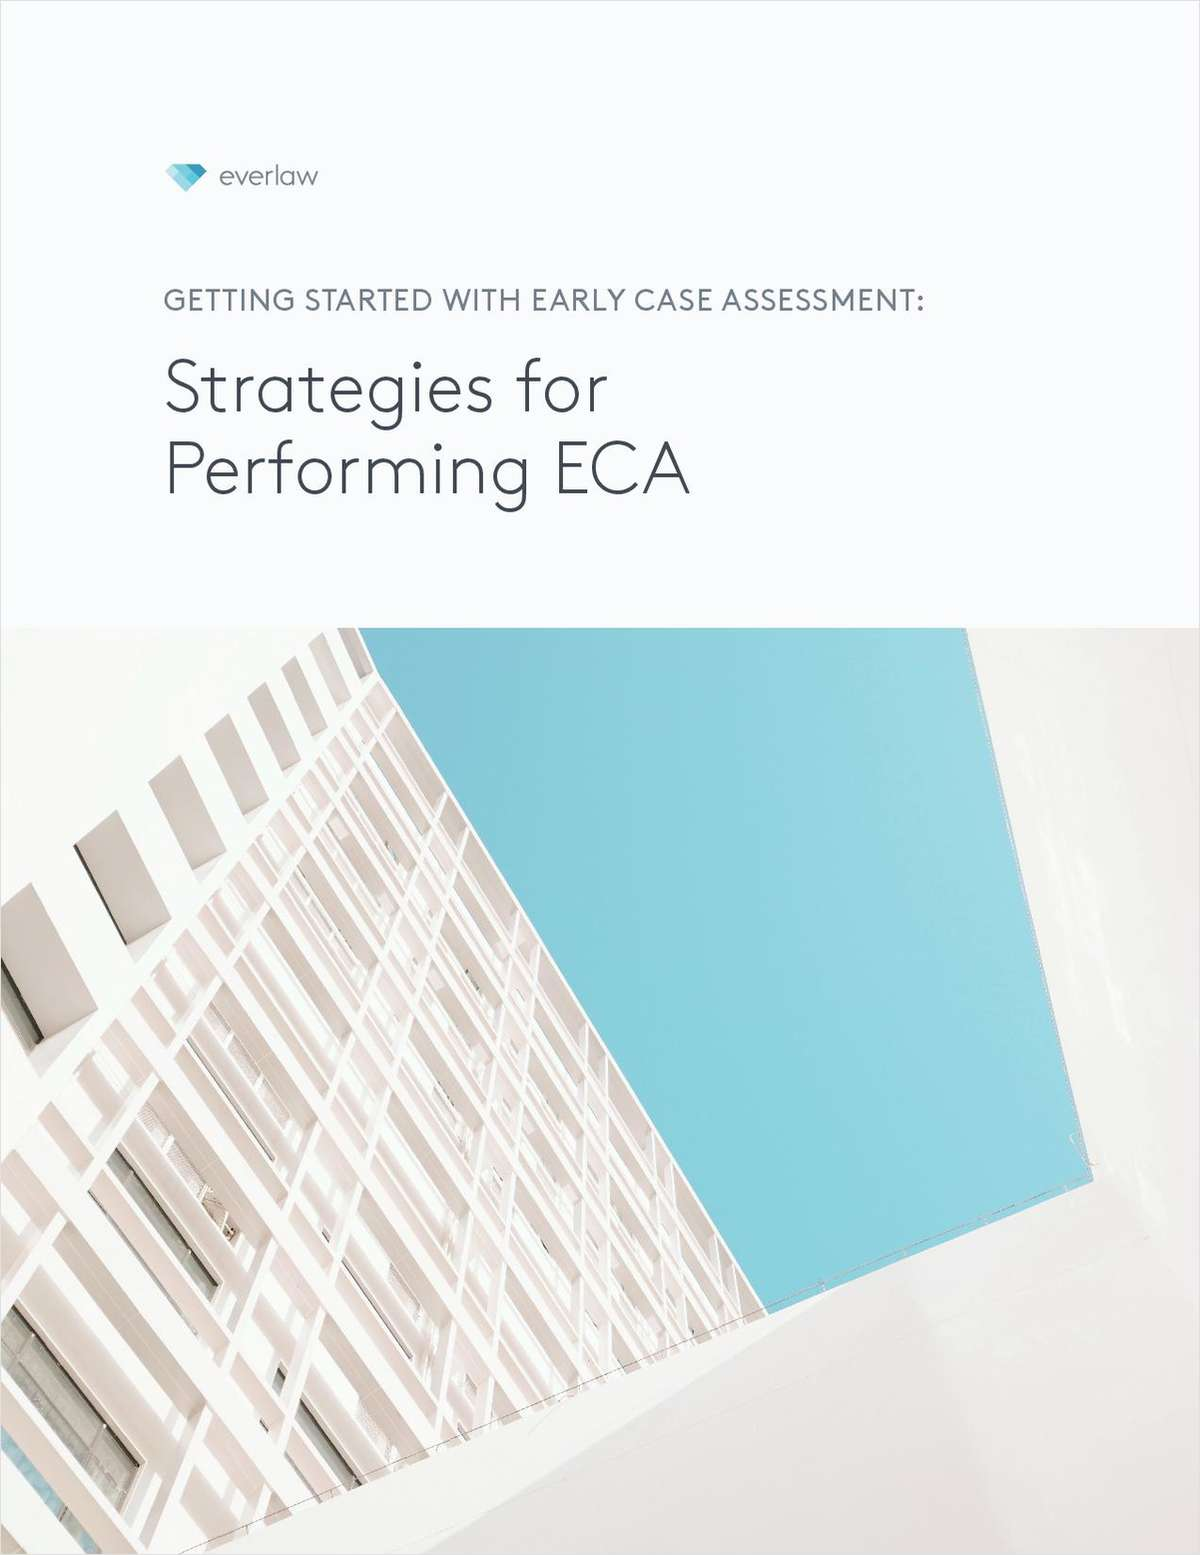 Getting Started with Early Case Assessment: Strategies for Performing ECA